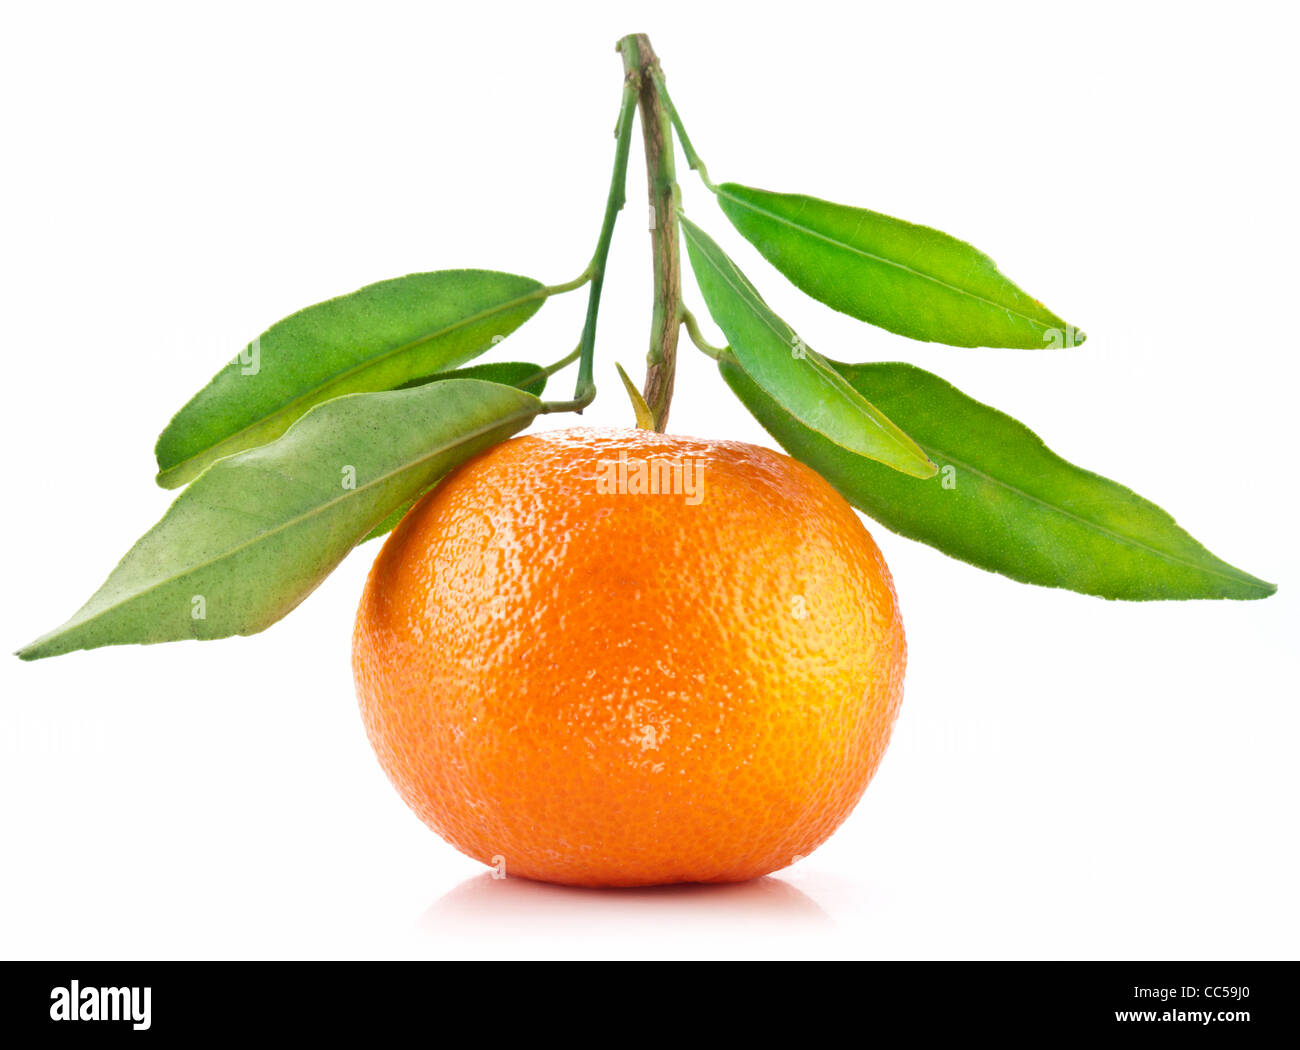 Tangerine with leaves on white background. - Stock Image